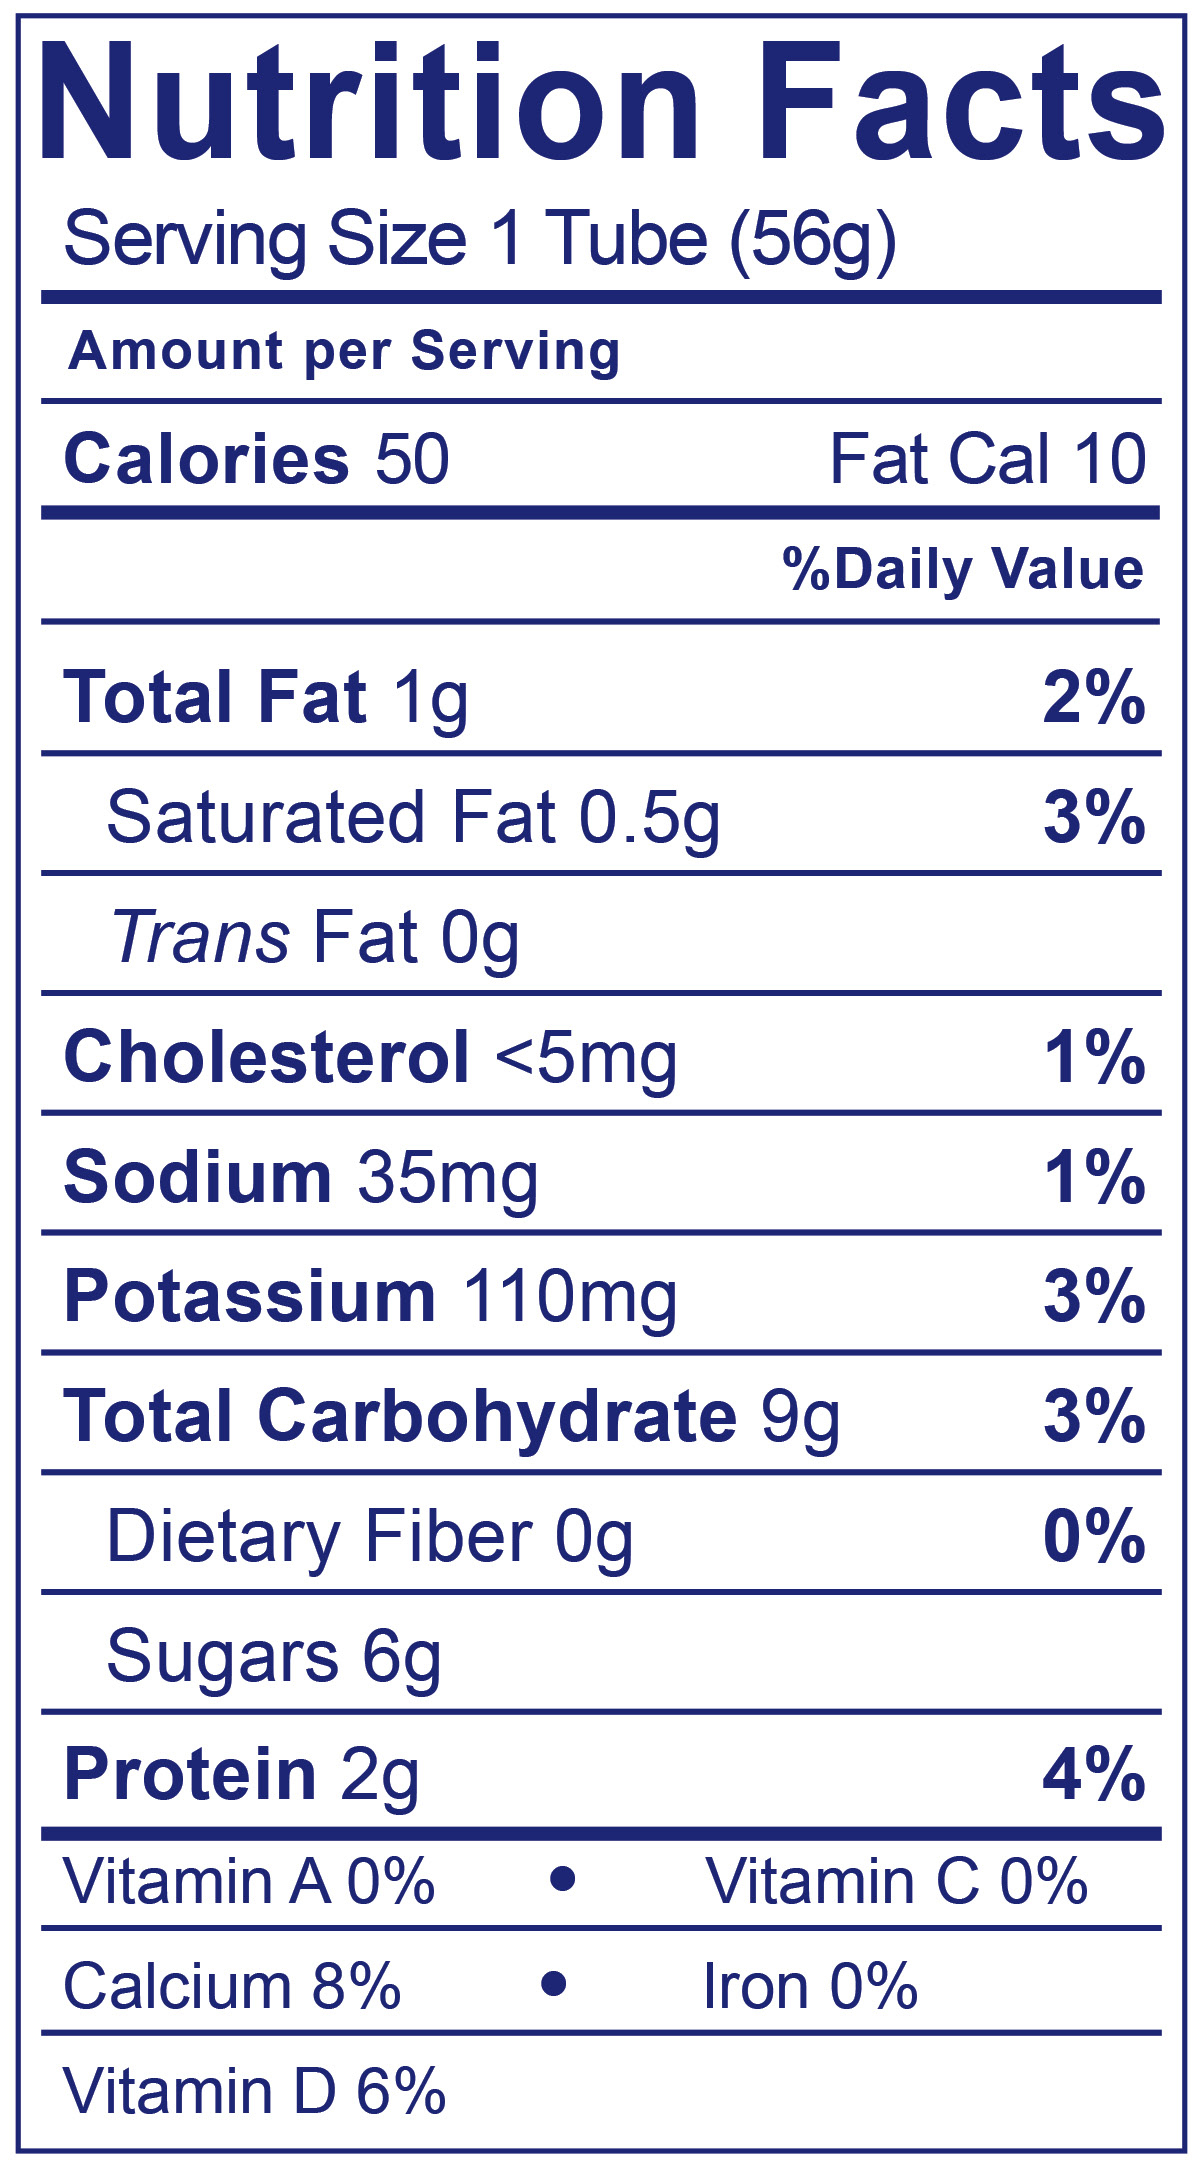 Kids Low Fat Tubes Birthday Cake - Nutrition Facts